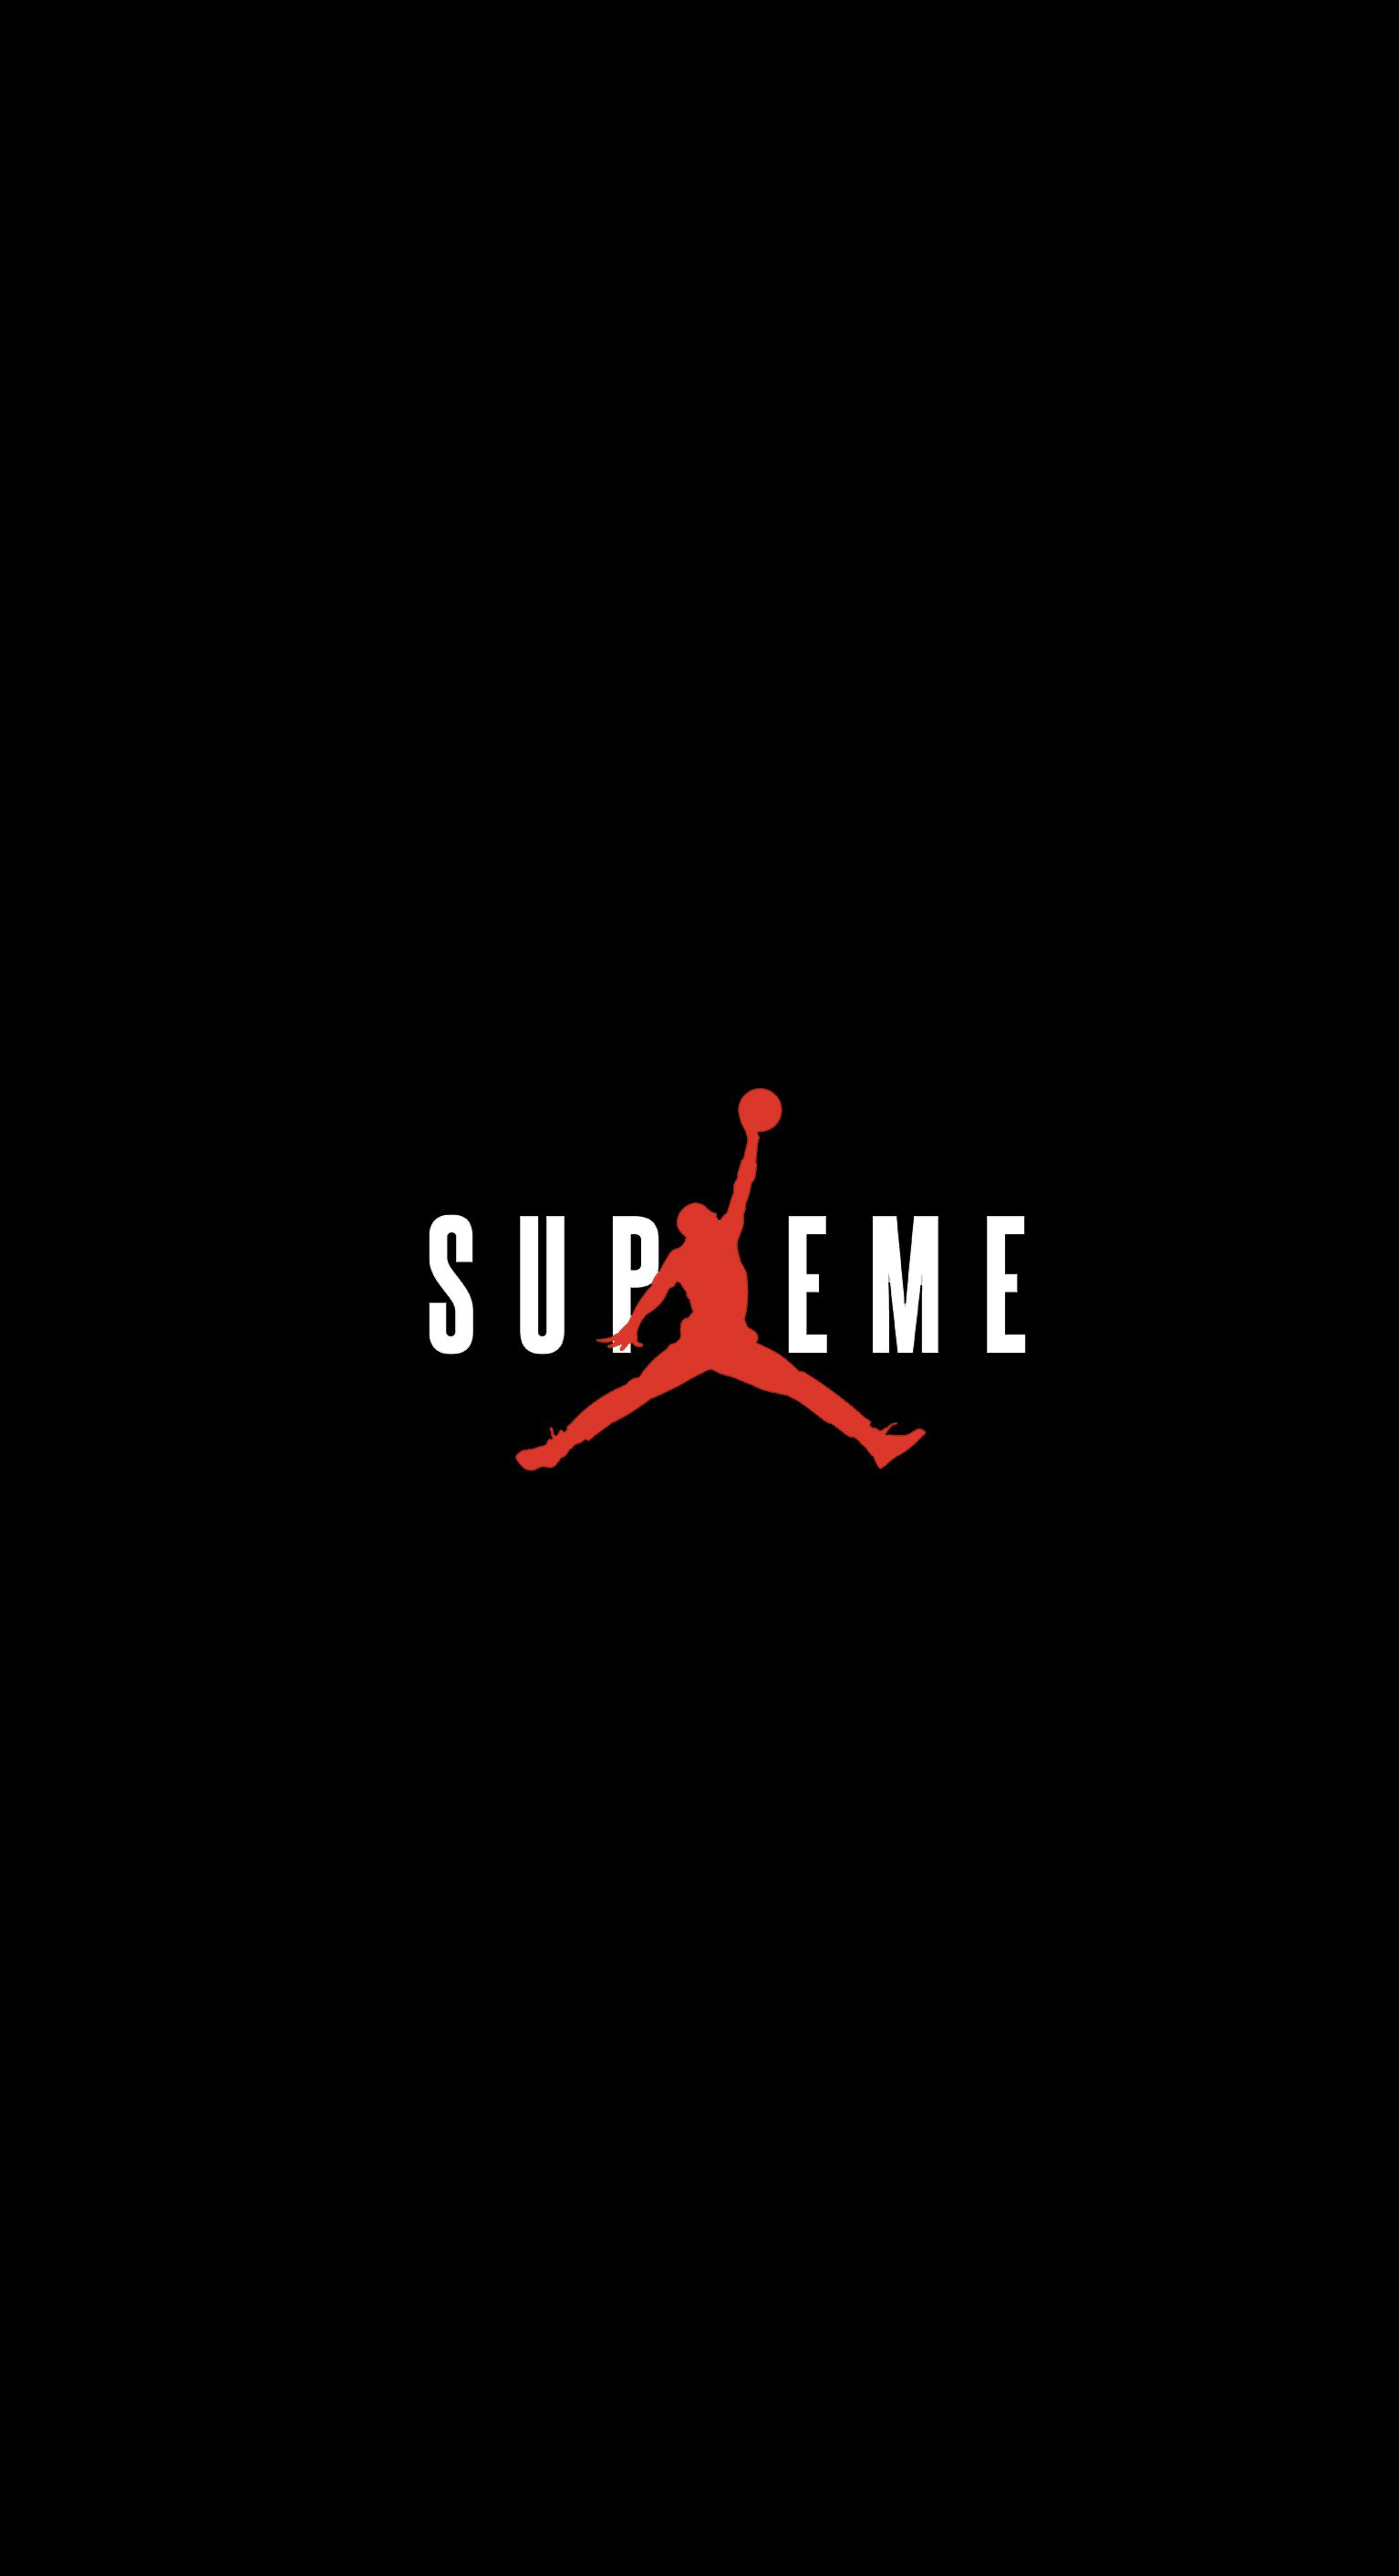 Supreme Supreme wallpaper, Supreme iphone wallpaper